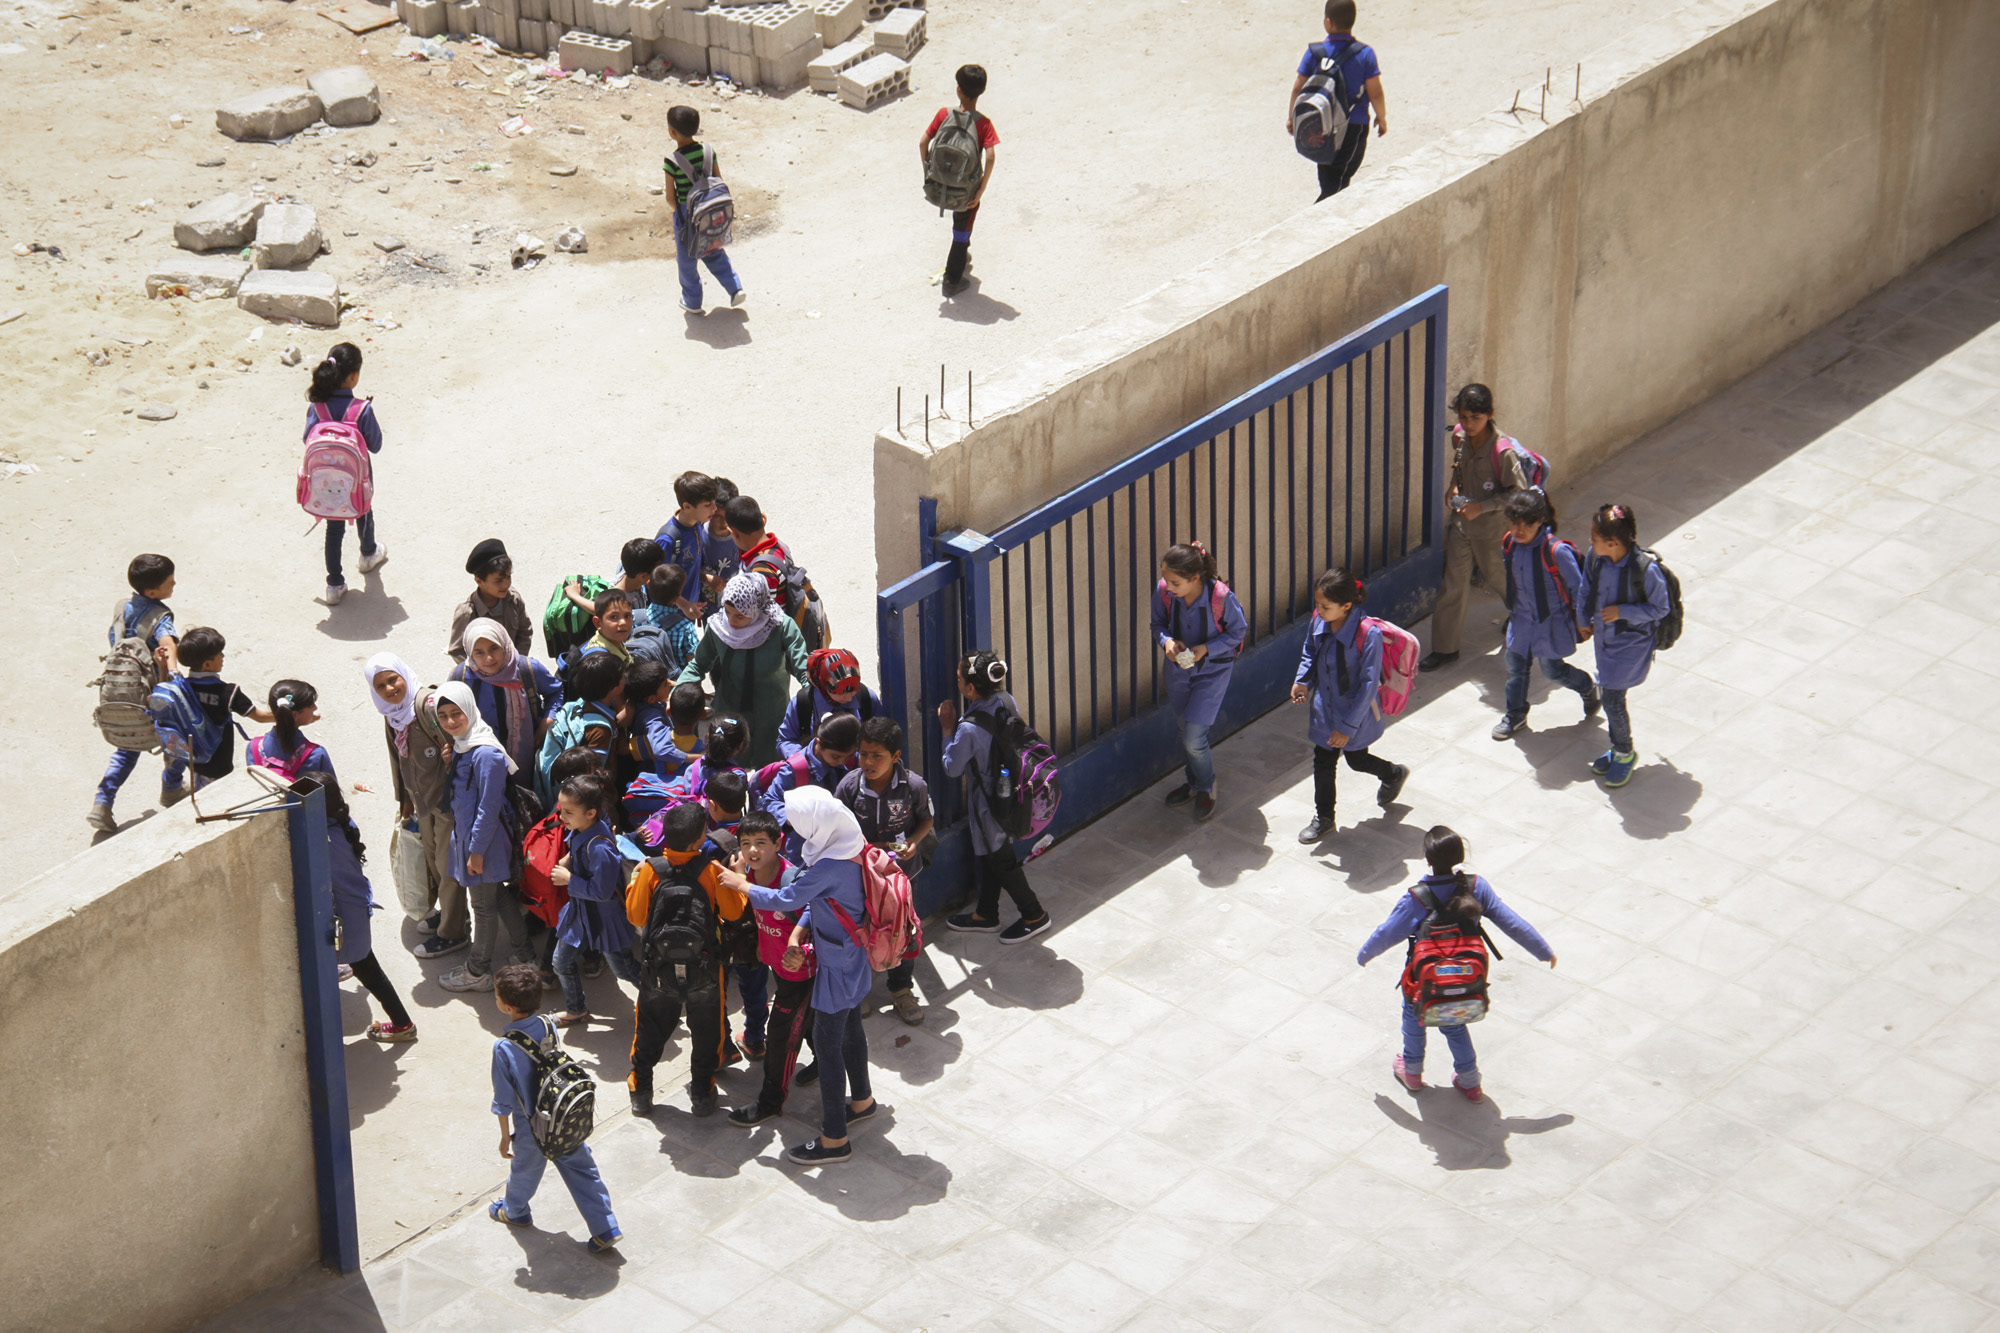 It's very busy at the gates at this time: Syrians are entering the school  to line up at the schoolyard to begin their class after the welcoming ritual. The Jordanians exit the building through the main and side entrance. At the gates carpooling Jordanian parents are waiting to pick up their children at the end of their school day.